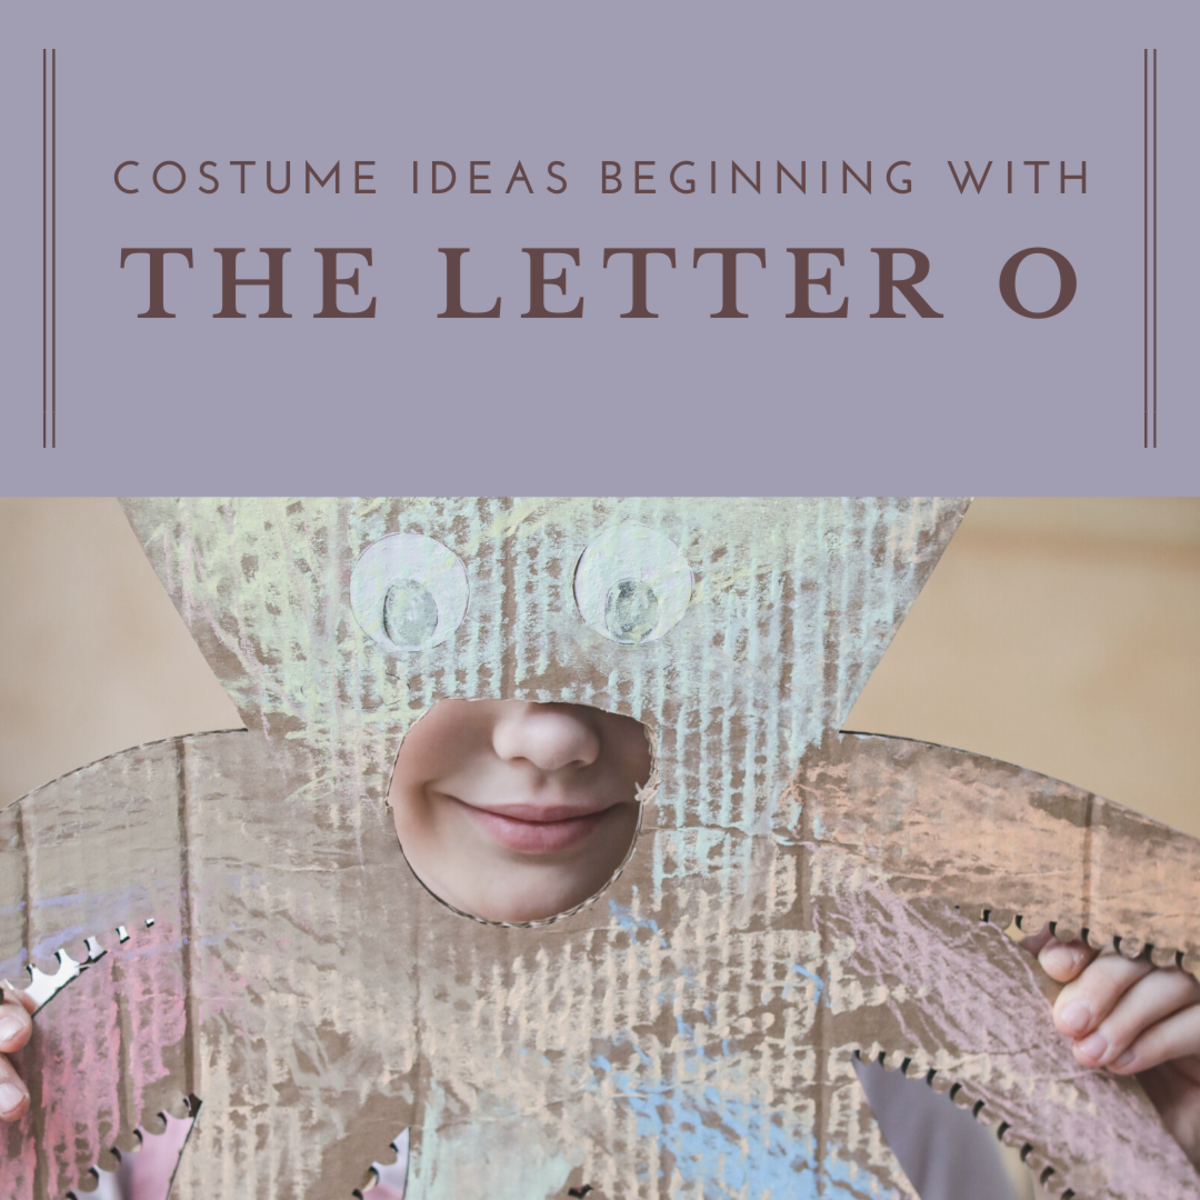 Hosting or attending a themed party where guests need to dress up as a person or thing that starts with the letter O? Here are some ideas to inspire you!